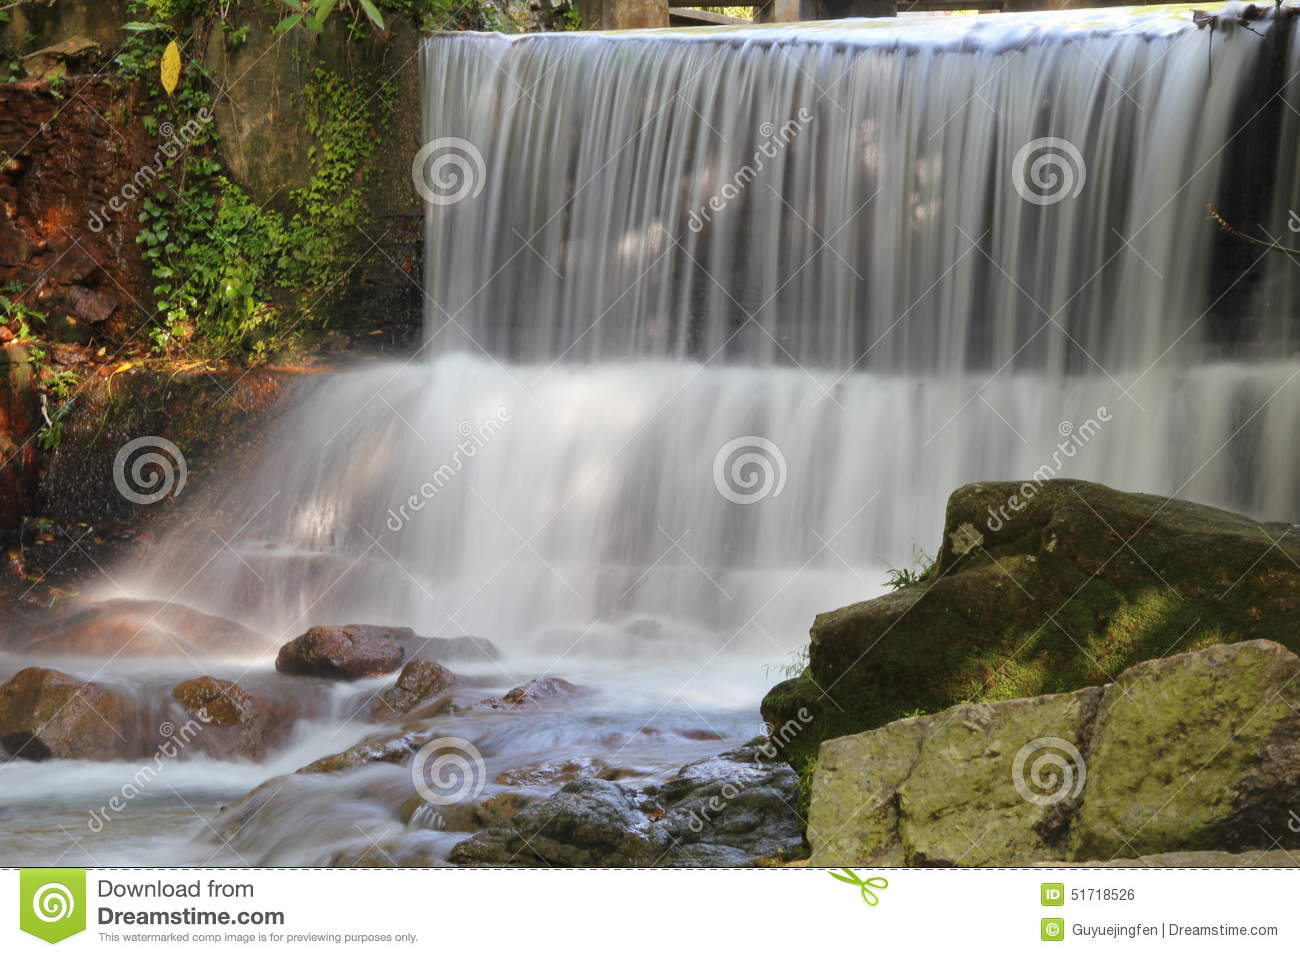 Waterfall stock photo image of environment garden for Waterfall environment